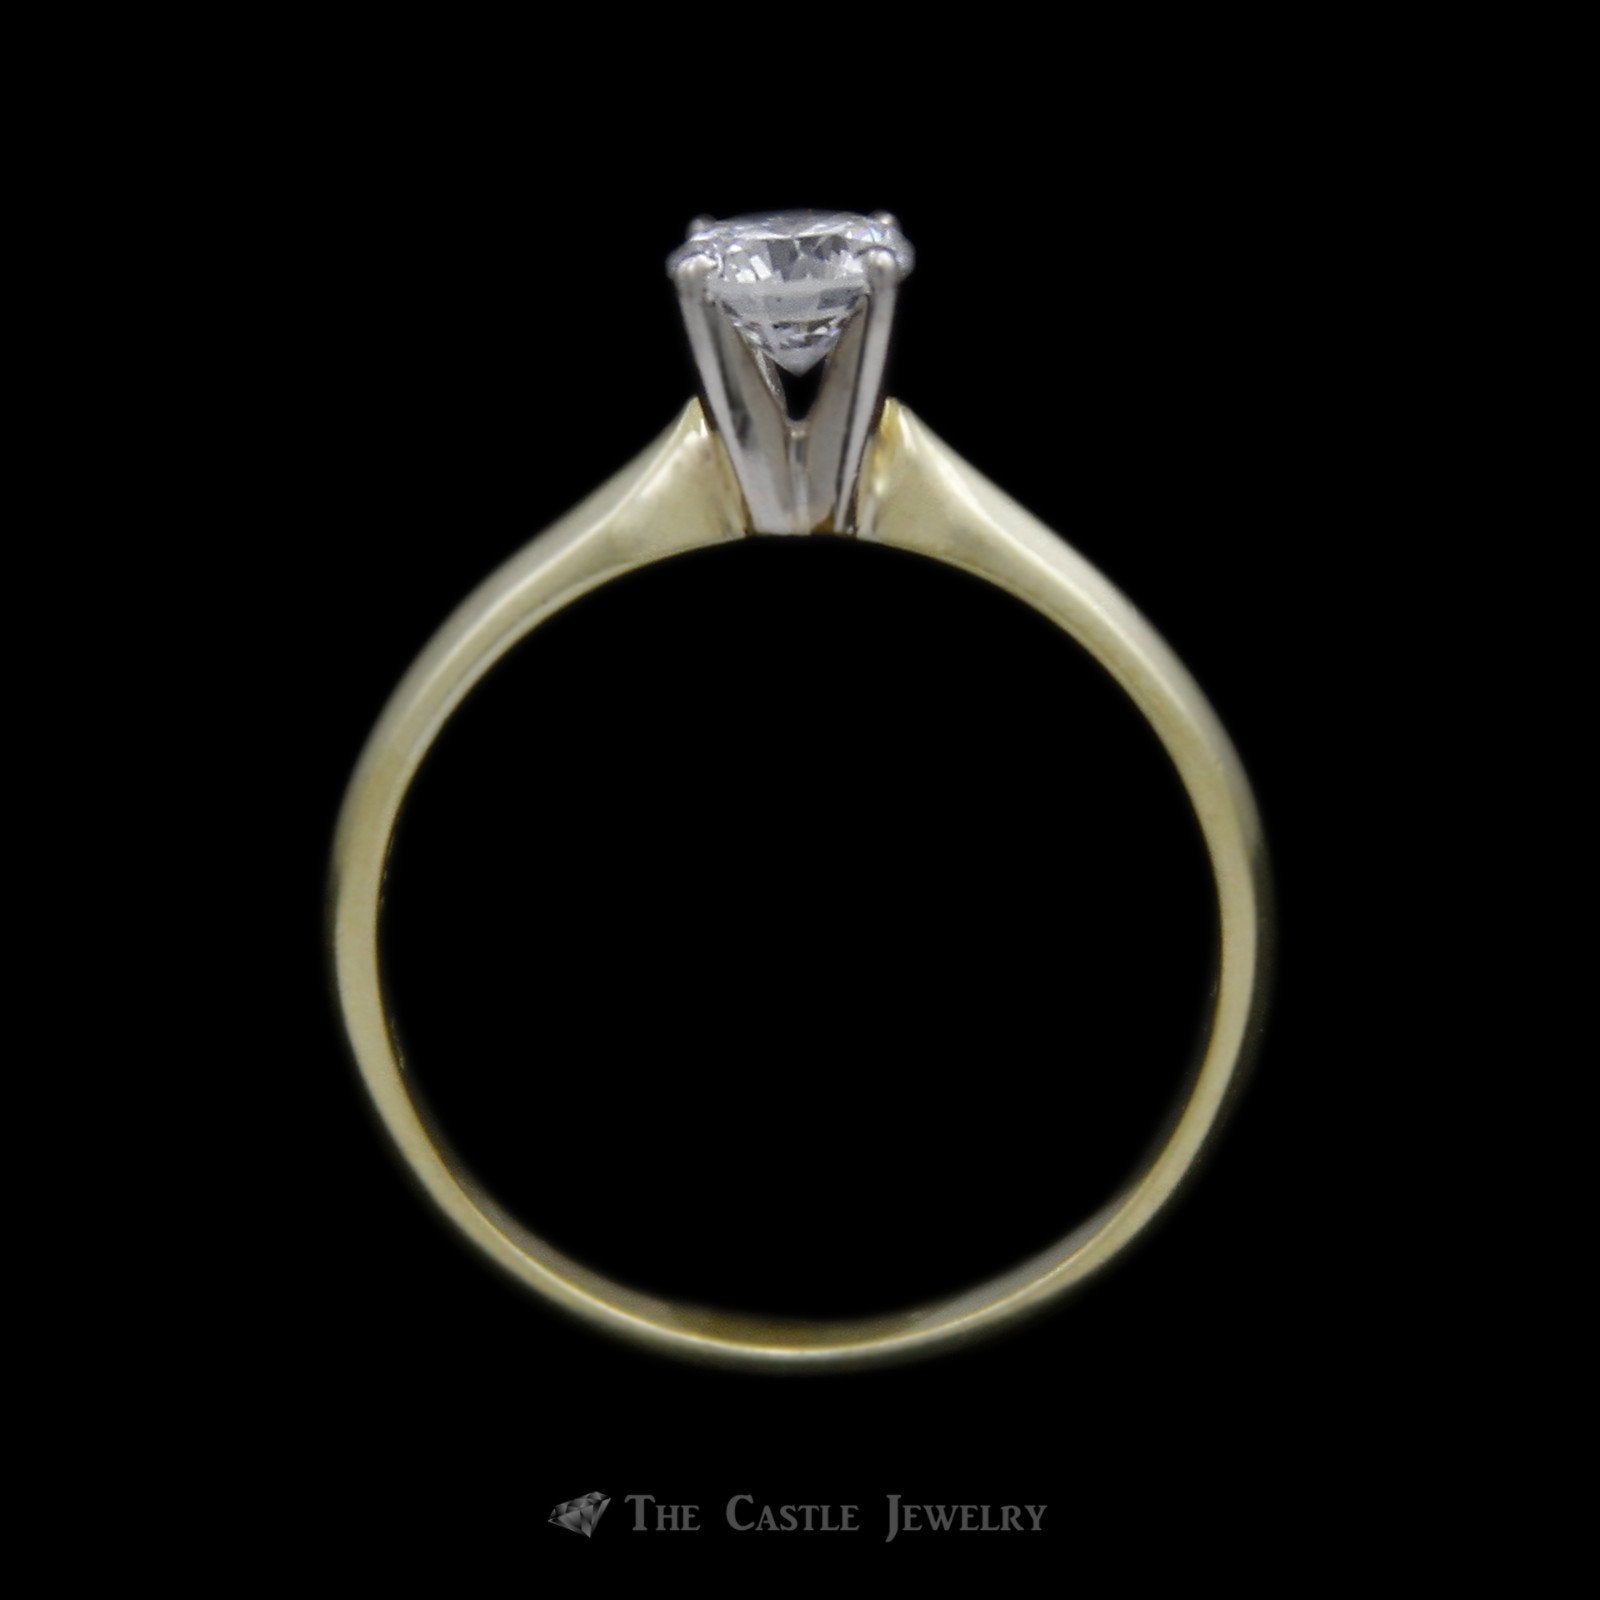 Round Brilliant Cut ½ Carat Diamond Engagement Ring SI1 G/H in 18K Yellow Gold-1